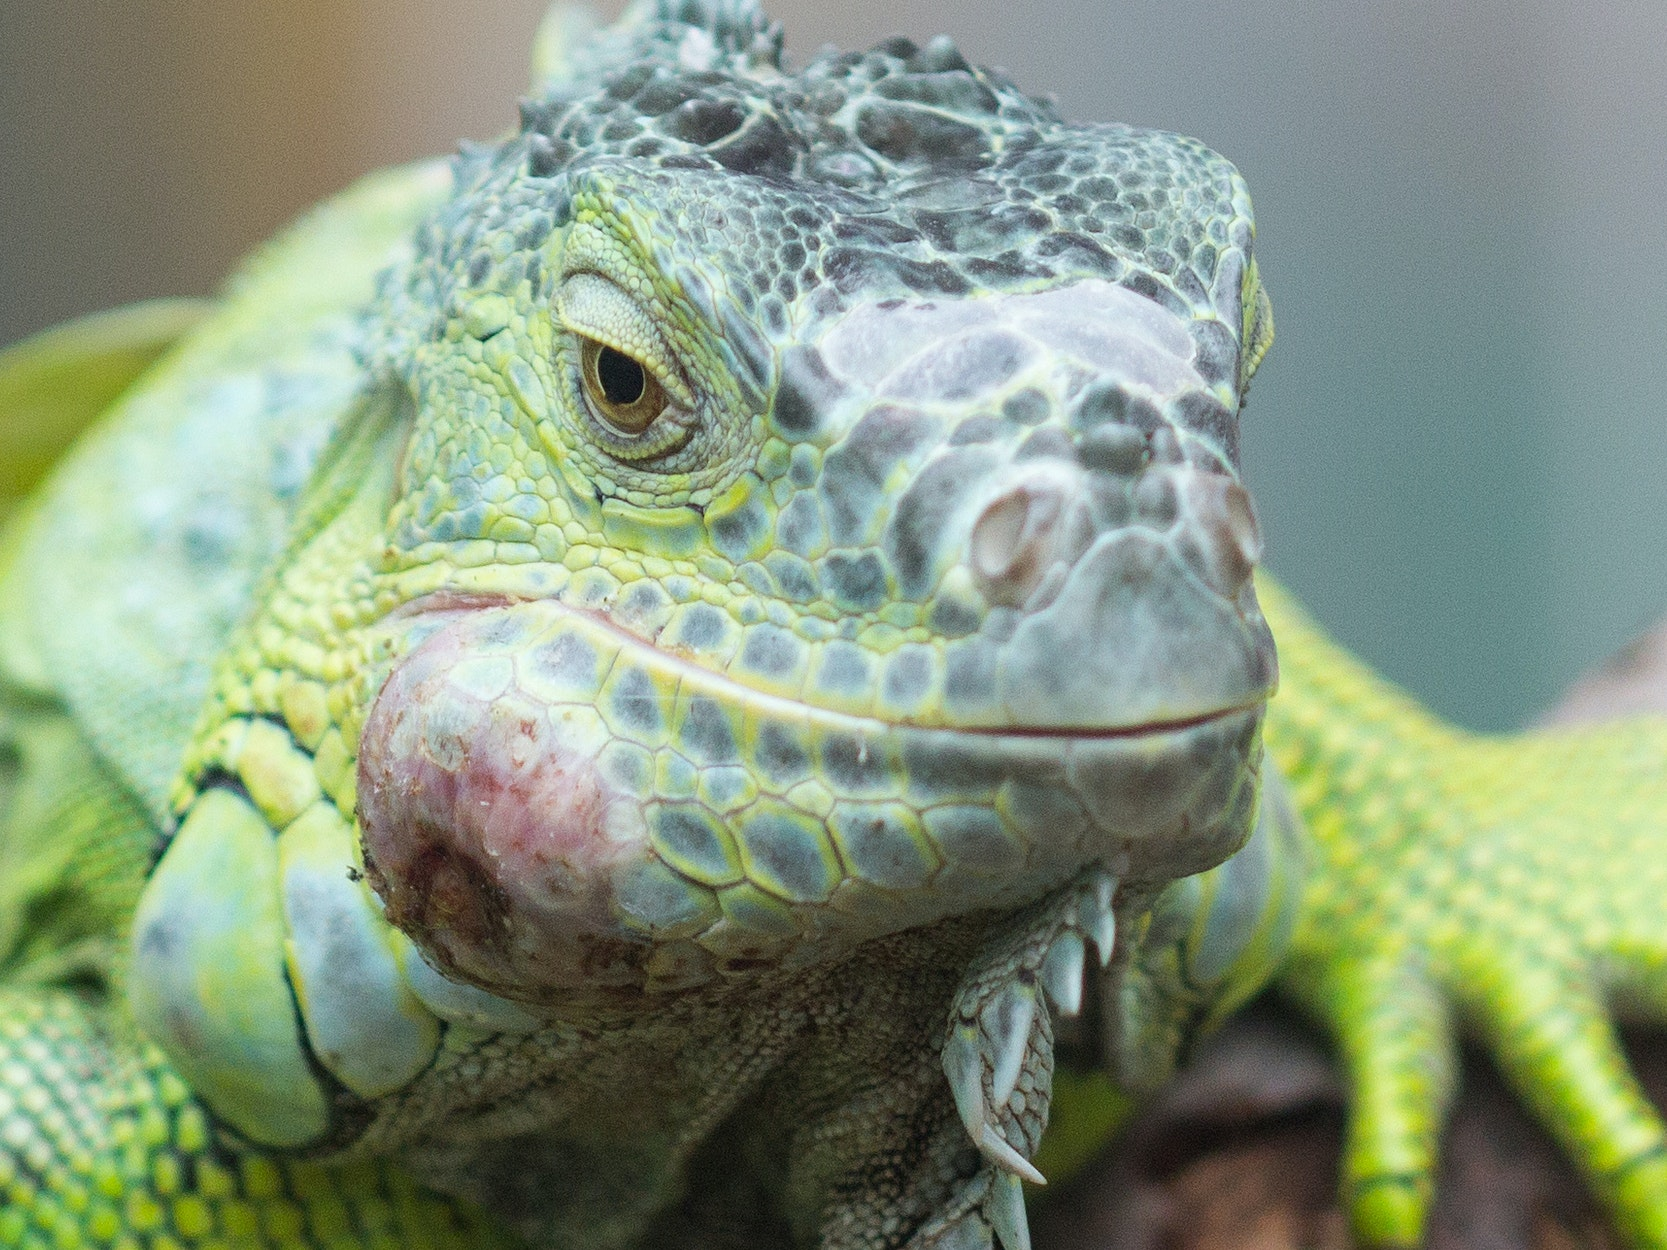 Eating Iguanas Solves South Florida's Invasive Species Problem a Taco at a Time